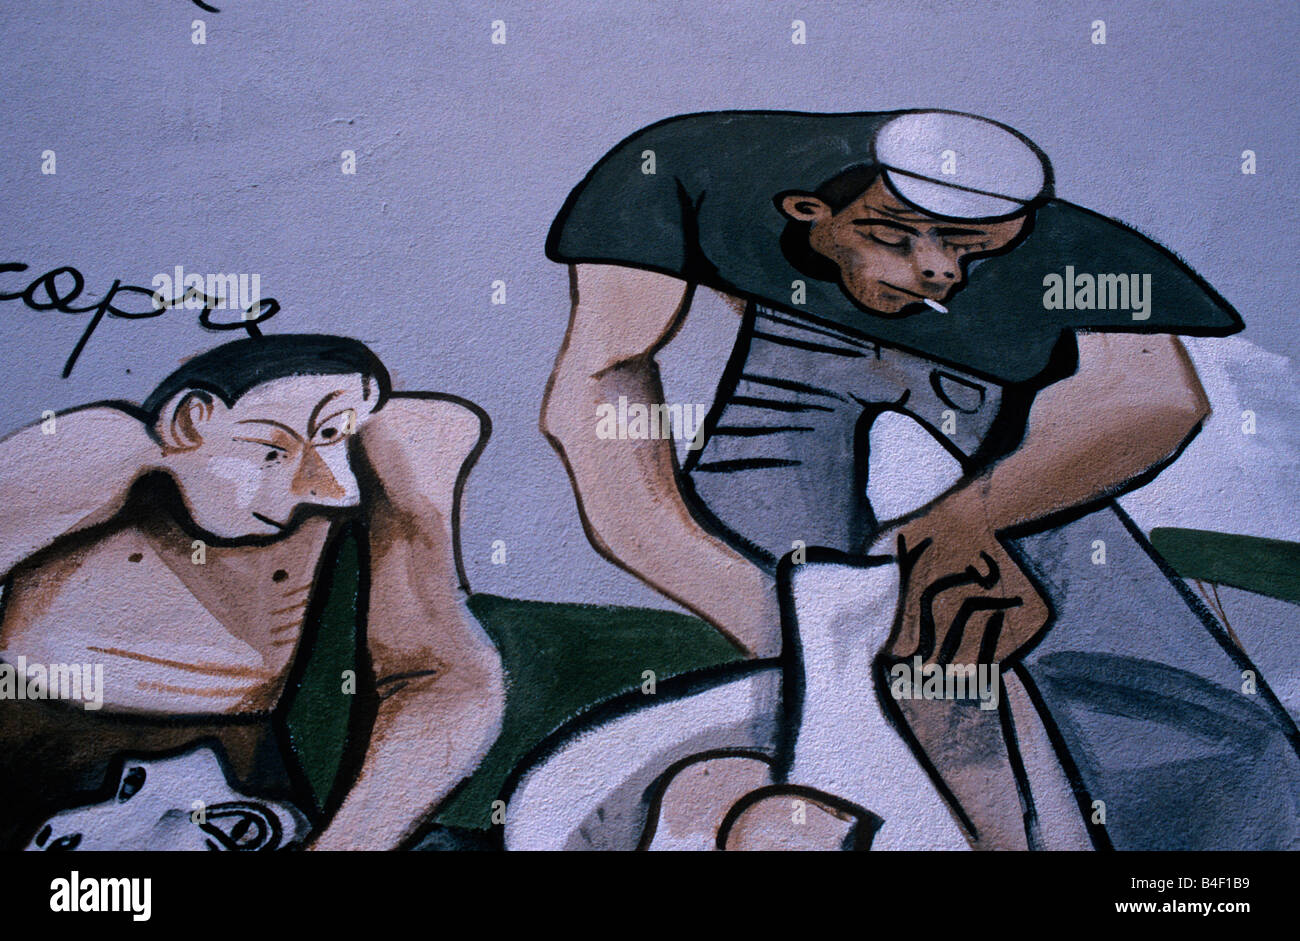 Mural illustrating social issues in Italy - Stock Image